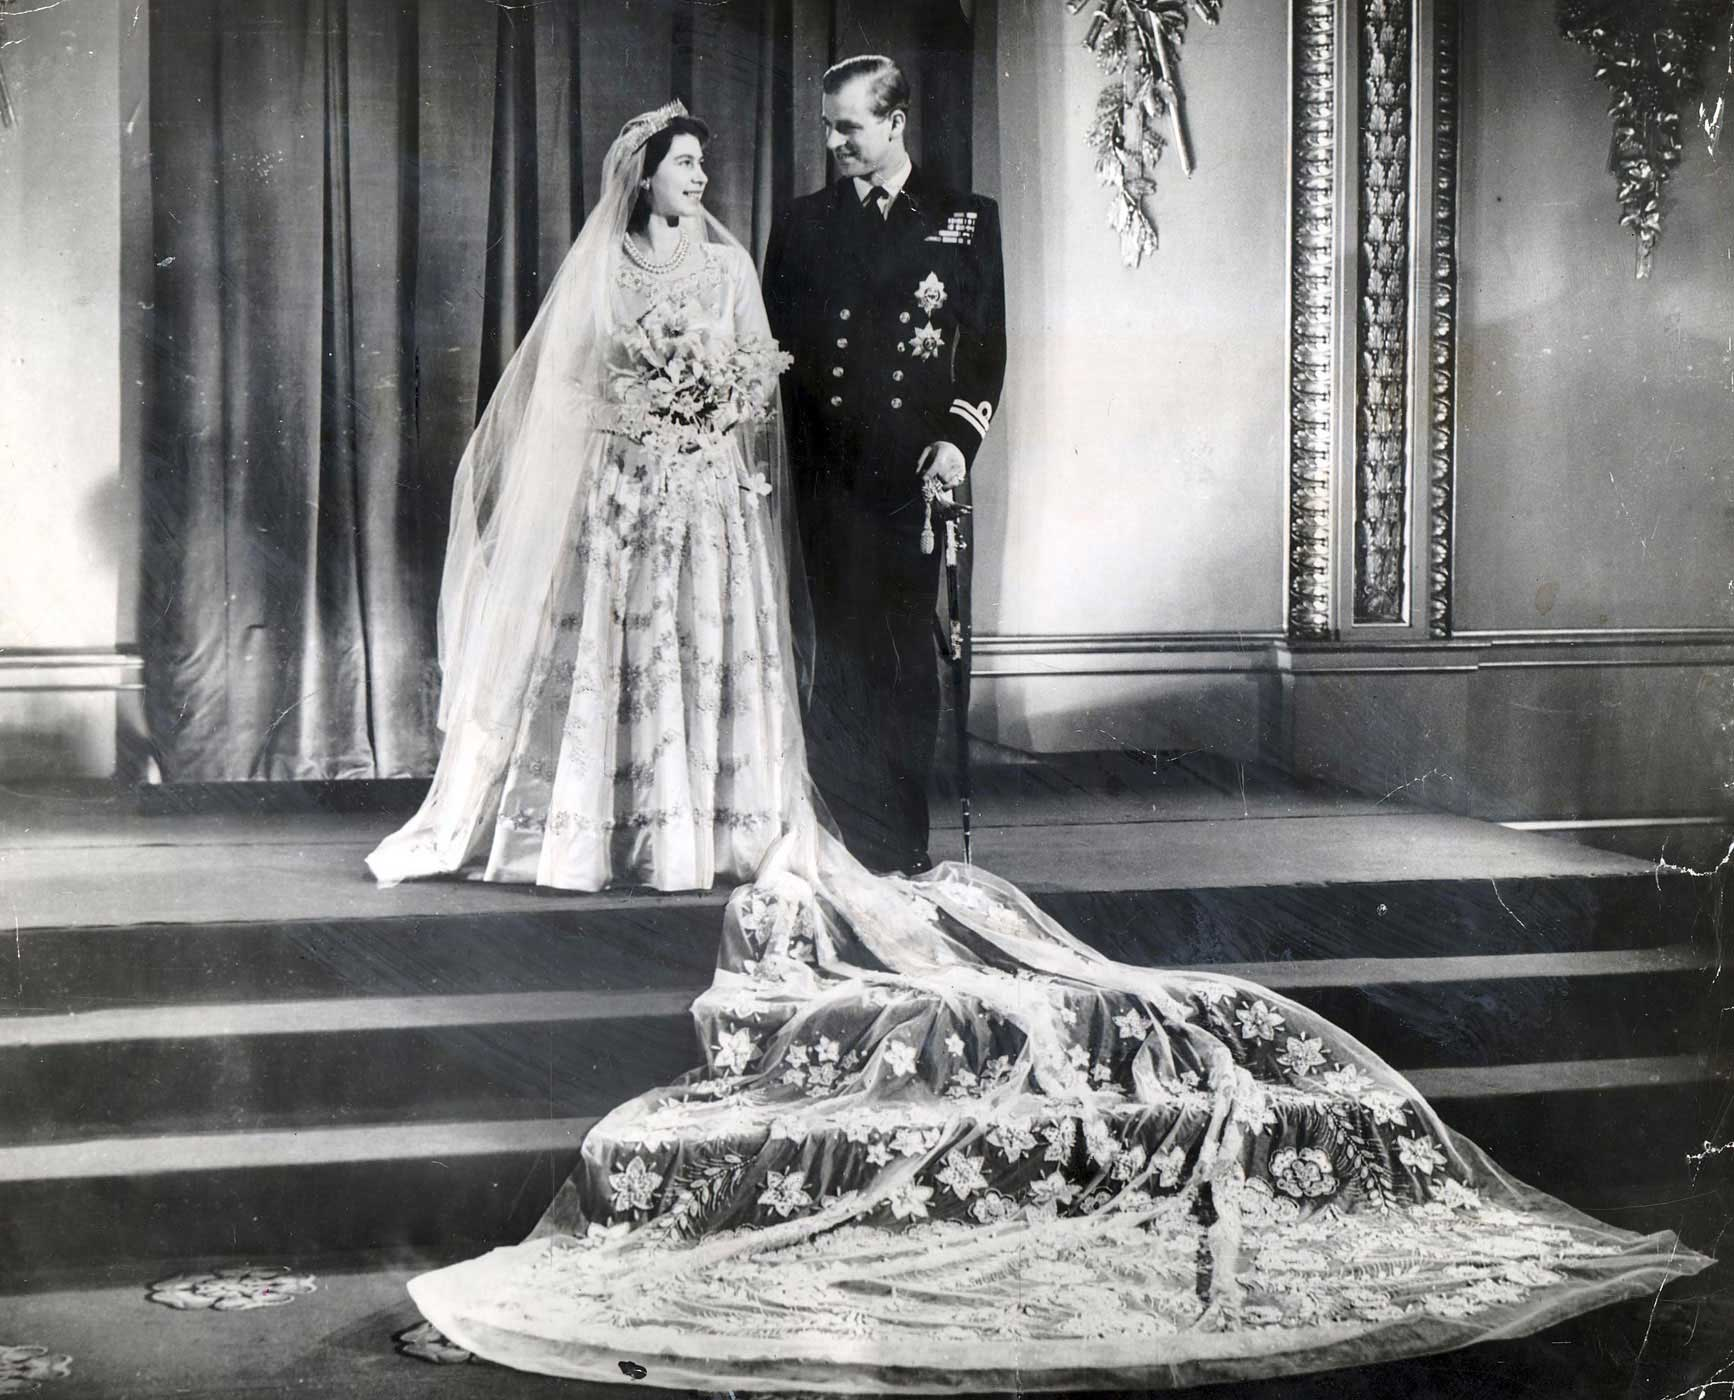 The happy royal couple, photographed on their wedding day, Nov. 20, 1947, at Buckingham Palace. Elizabeth's dress was designed by Sir Norman Bishop Hartnell and was purchased with ration coupons because of the economic hardship Britain faced after the war.